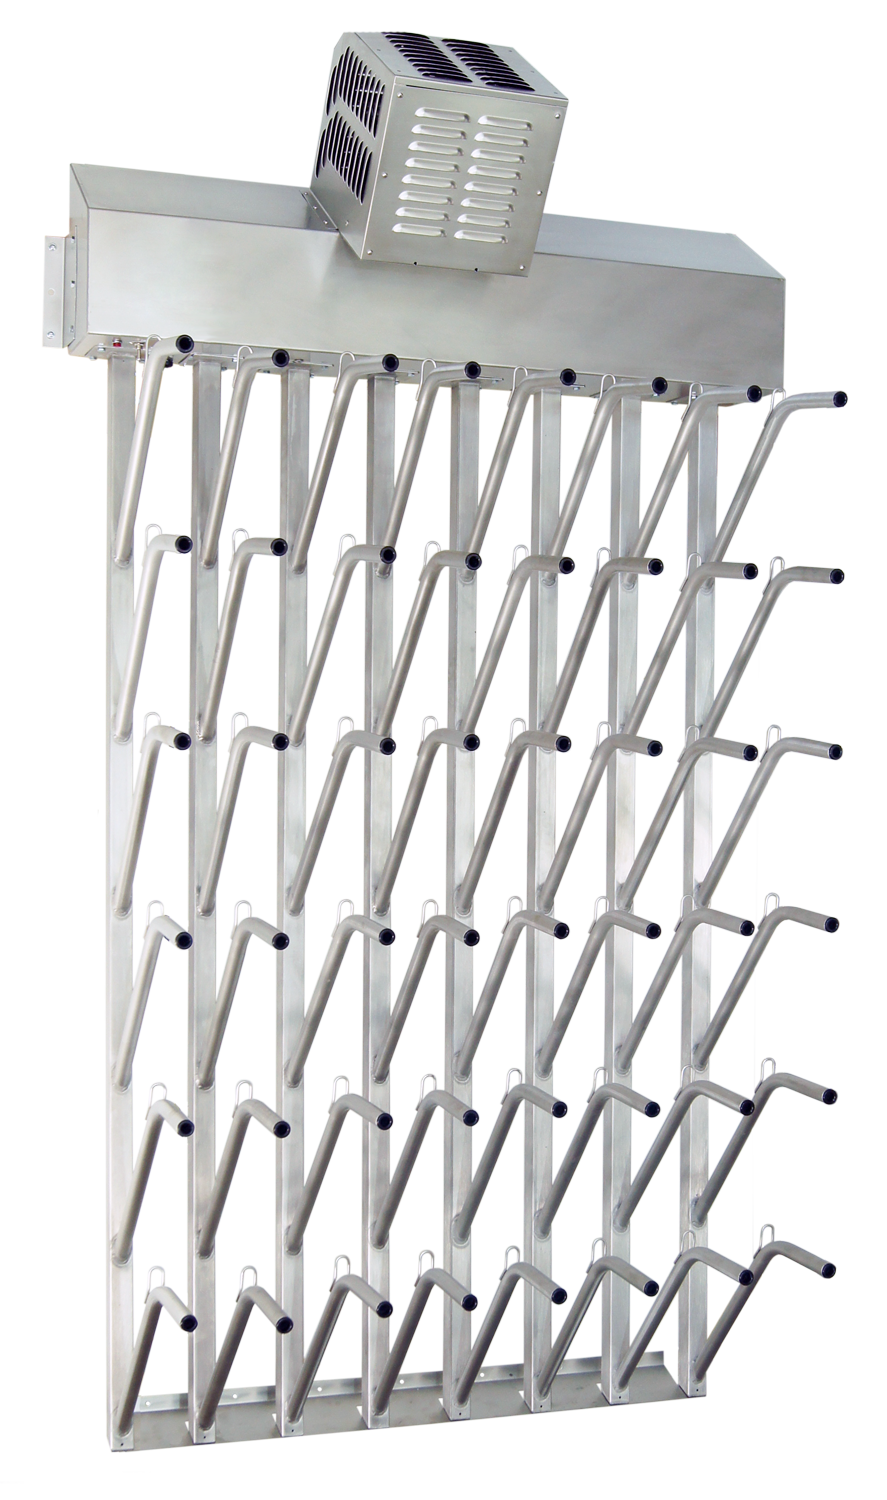 Dryer for boots in food grade stainless steel  Dryer for gloves in food grade stainless steel  Glove Dryer  Gloves Dryer  Boot Dryer  Boots Dryer  Dryer for gloves  Dryer for boots  Boot and glove Dryer  Boots and gloves Dryer  Dryer for boots and gloves  Dryer for boot and glove  Stainless steel for boots and gloves